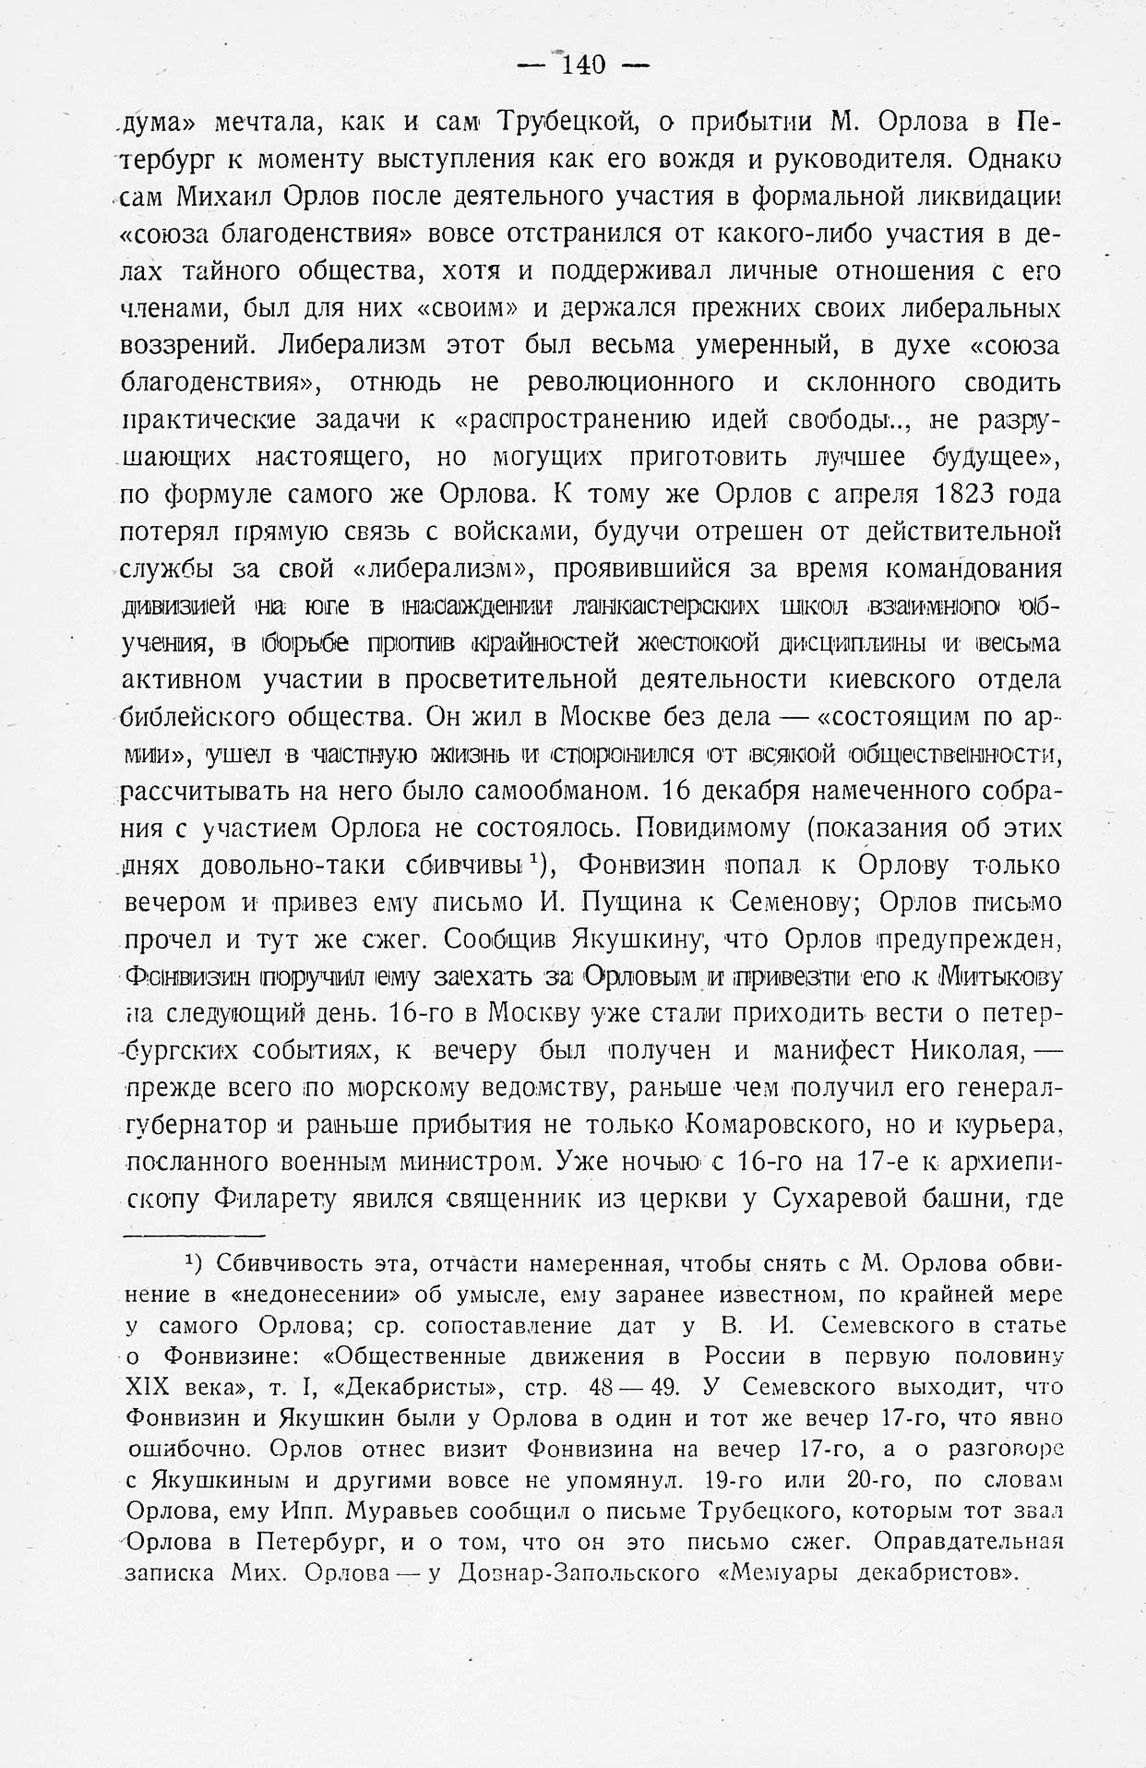 http://elib.shpl.ru/pages/566037/zooms/7